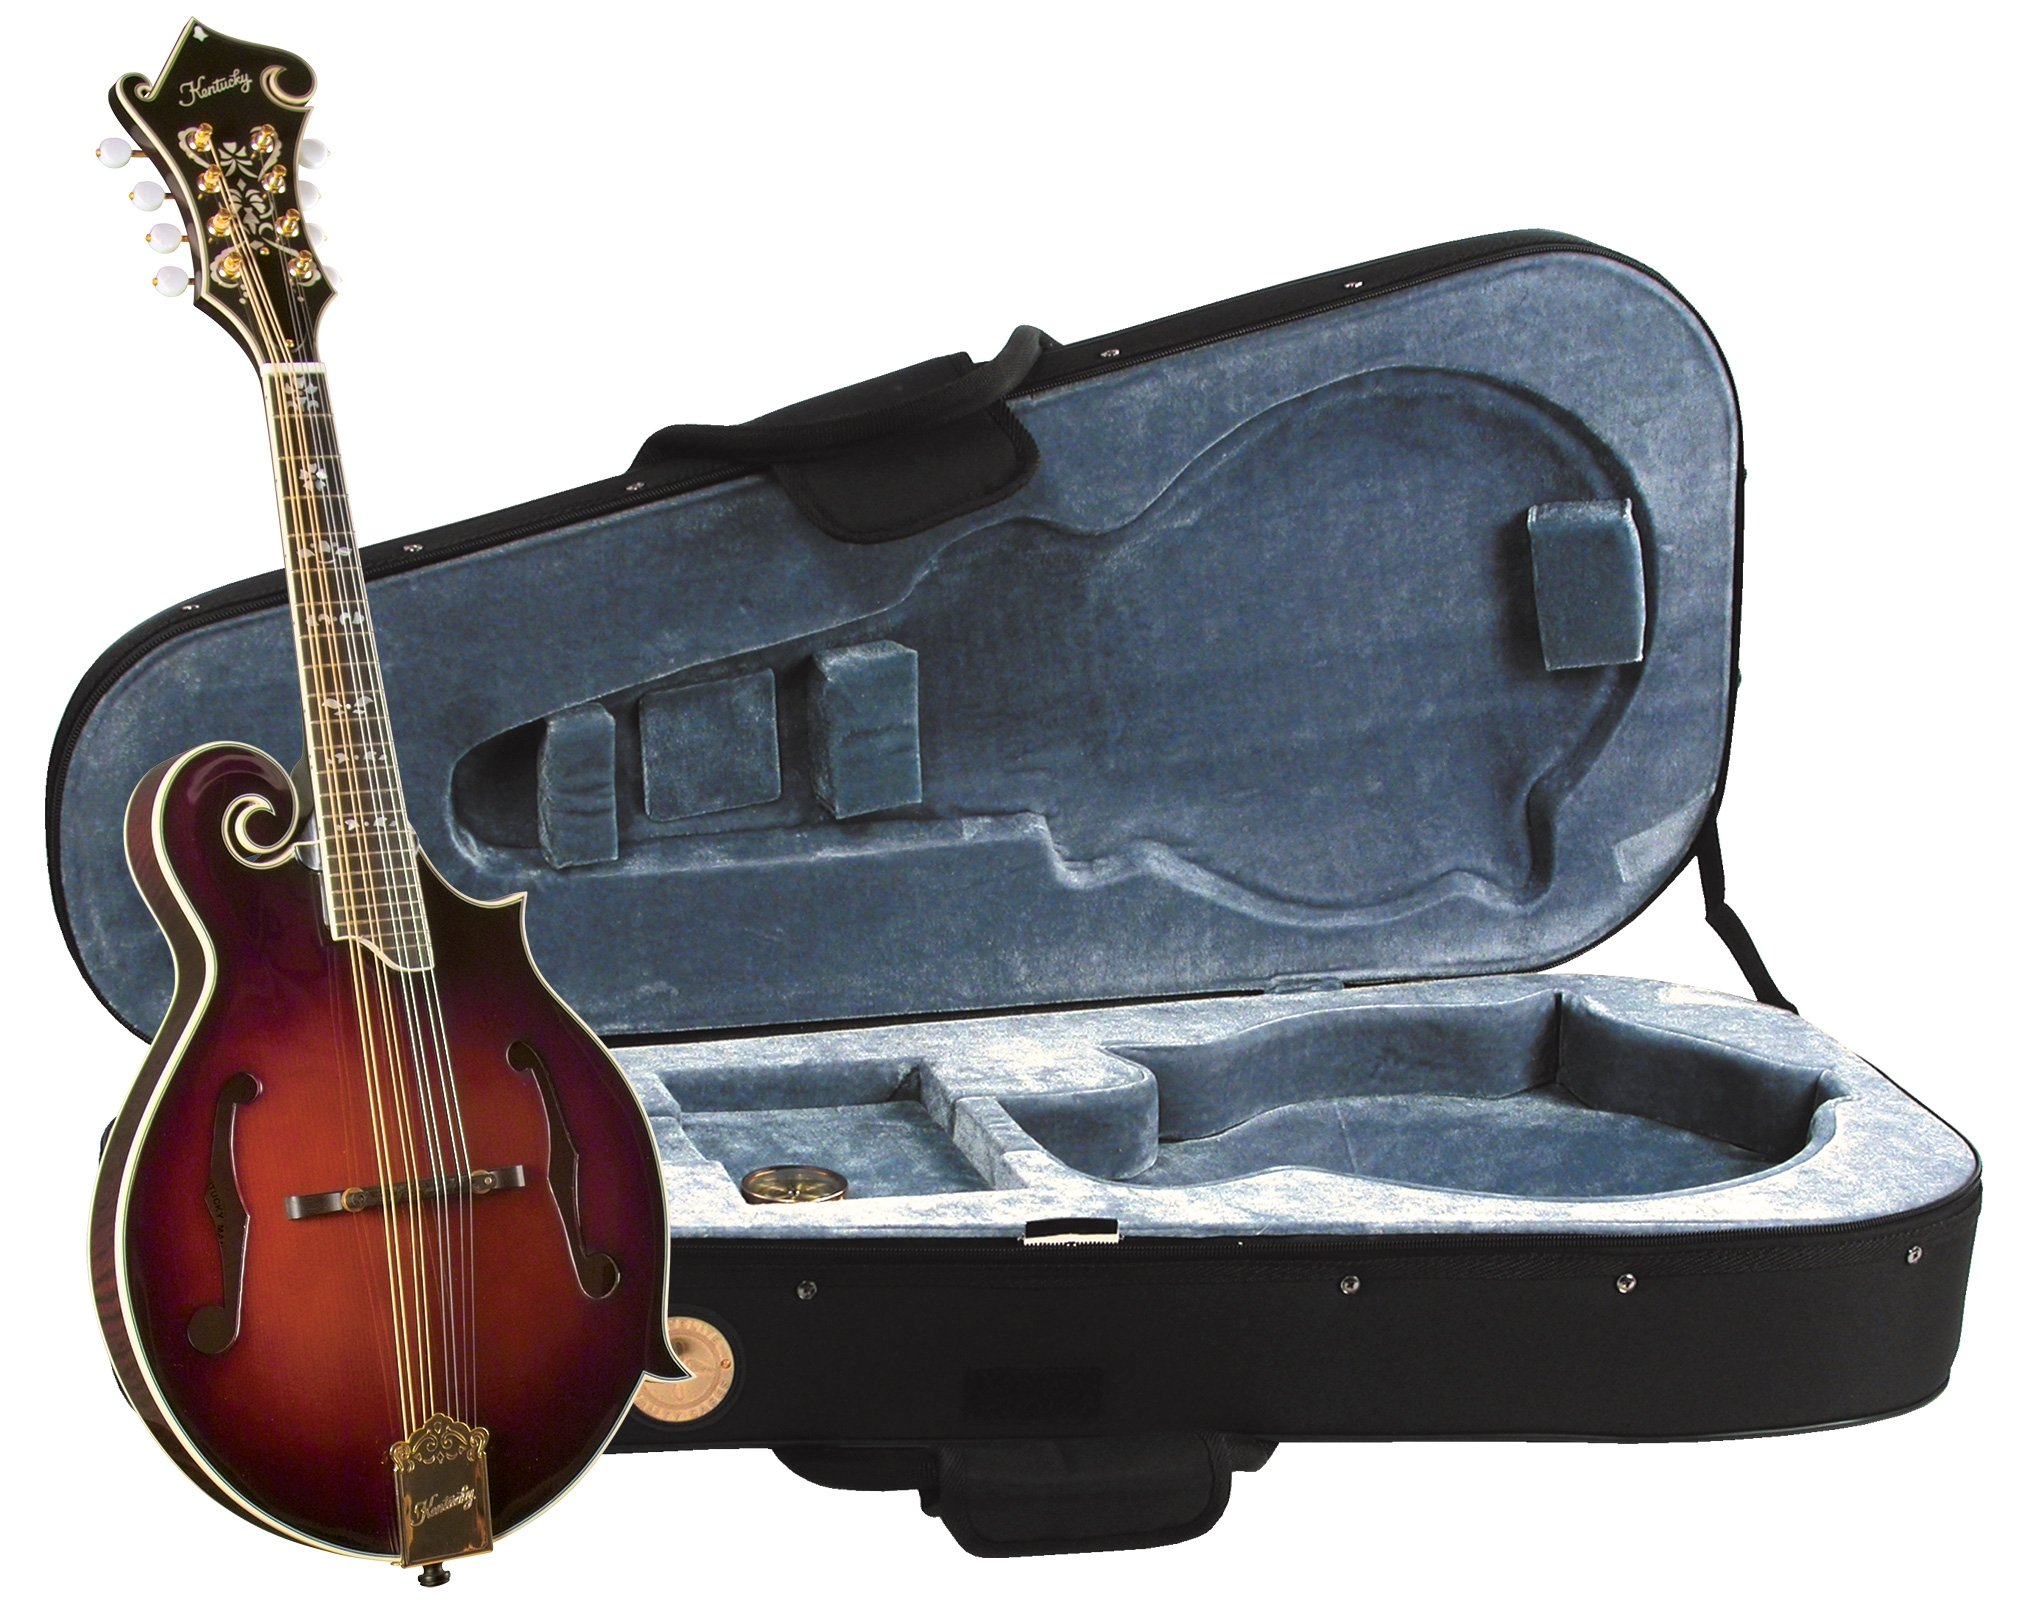 Kentucky KM-855 F-model Mandolin with Deluxe Case